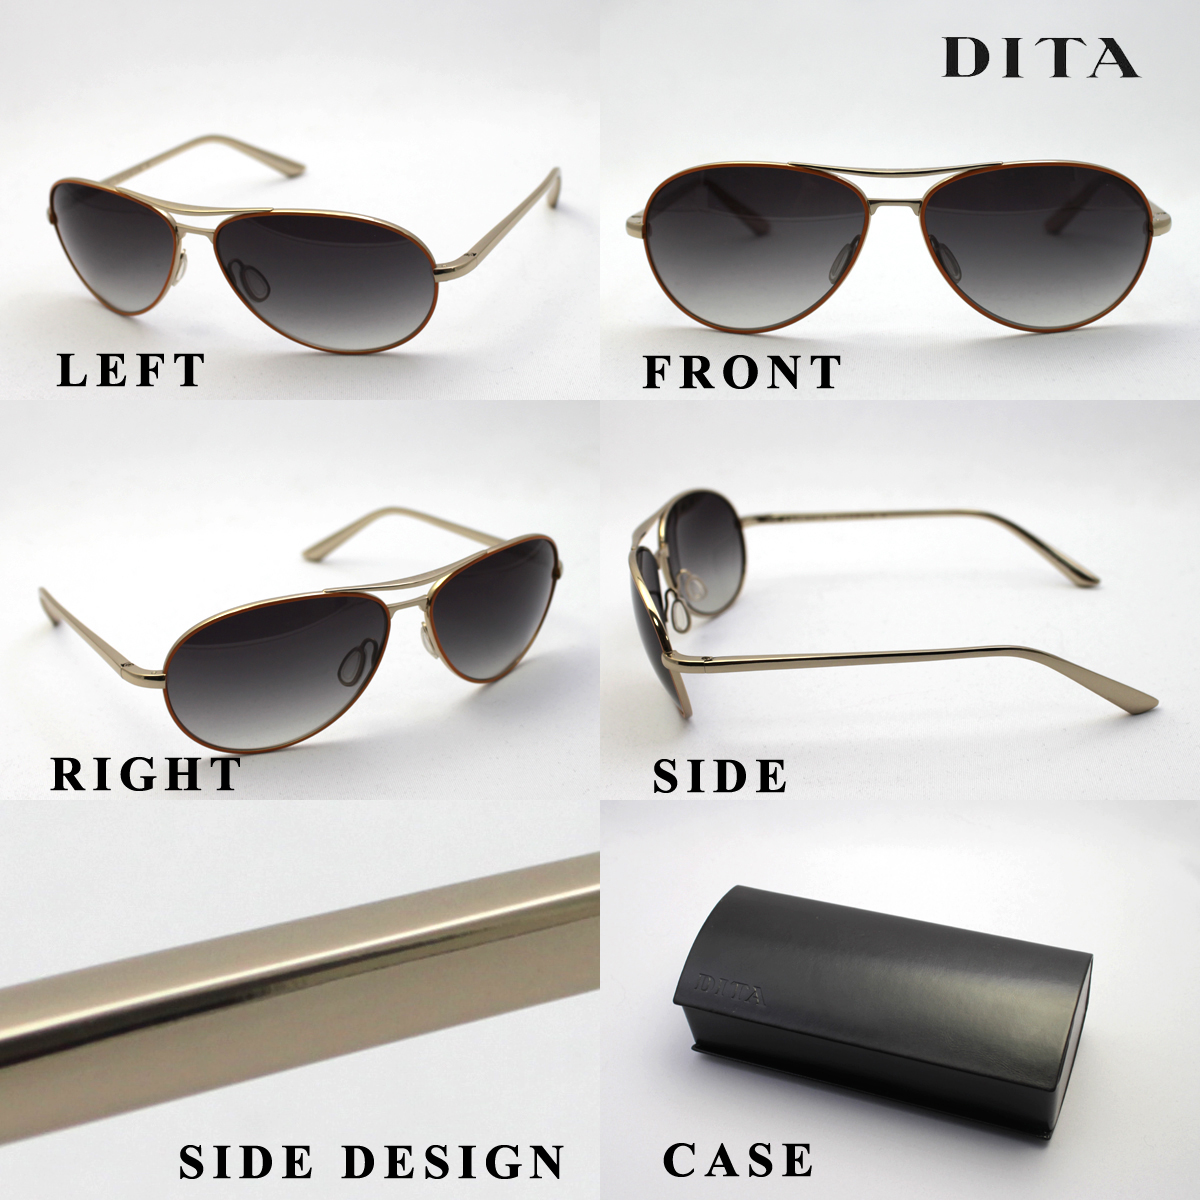 DITA DITA sunglasses DITA7803D FLIGHT. S Teardrop Aviator uv cut glma new stock